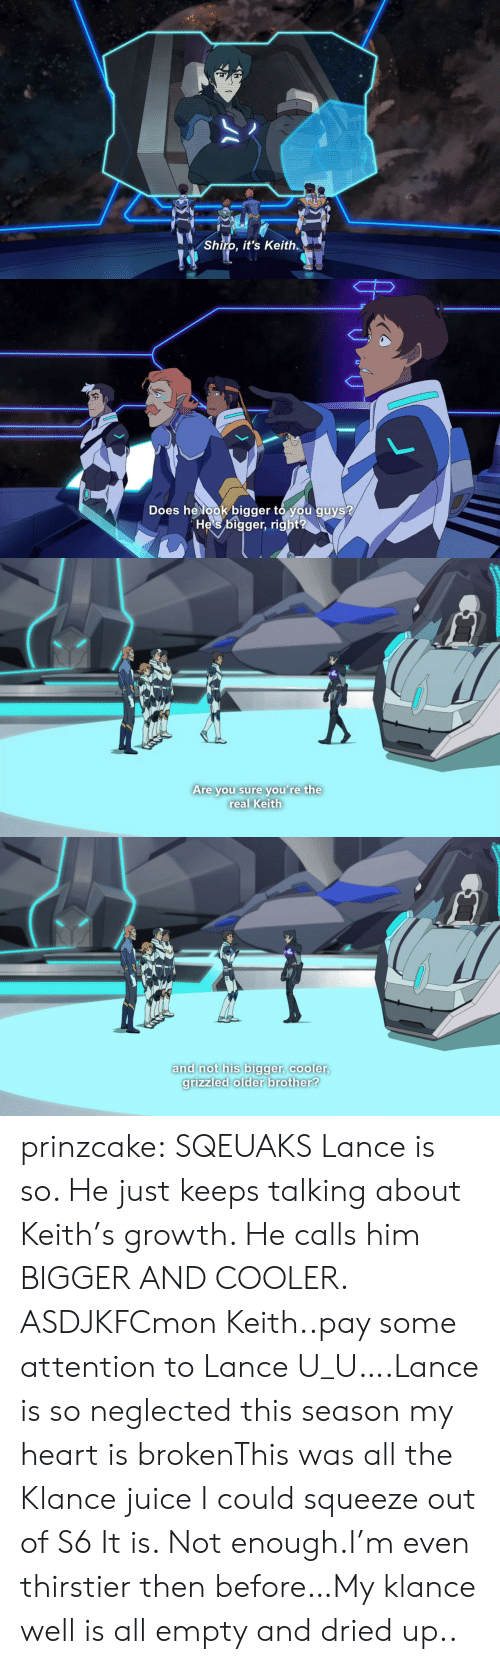 Shiro: Shiro, it's Keith.   Does helook bigger to you guys?  He's bigger, right   Are you sure you're the  real Keith   and not his bigger, cooler  grizzled older brother? prinzcake:  SQEUAKS Lance is so. He just keeps talking about Keith's growth. He calls him BIGGER AND COOLER. ASDJKFCmon Keith..pay some attention to Lance U_U….Lance is so neglected this season my heart is brokenThis was all the Klance juice I could squeeze out of S6 It is. Not enough.I'm even thirstier then before…My klance well is all empty and dried up..